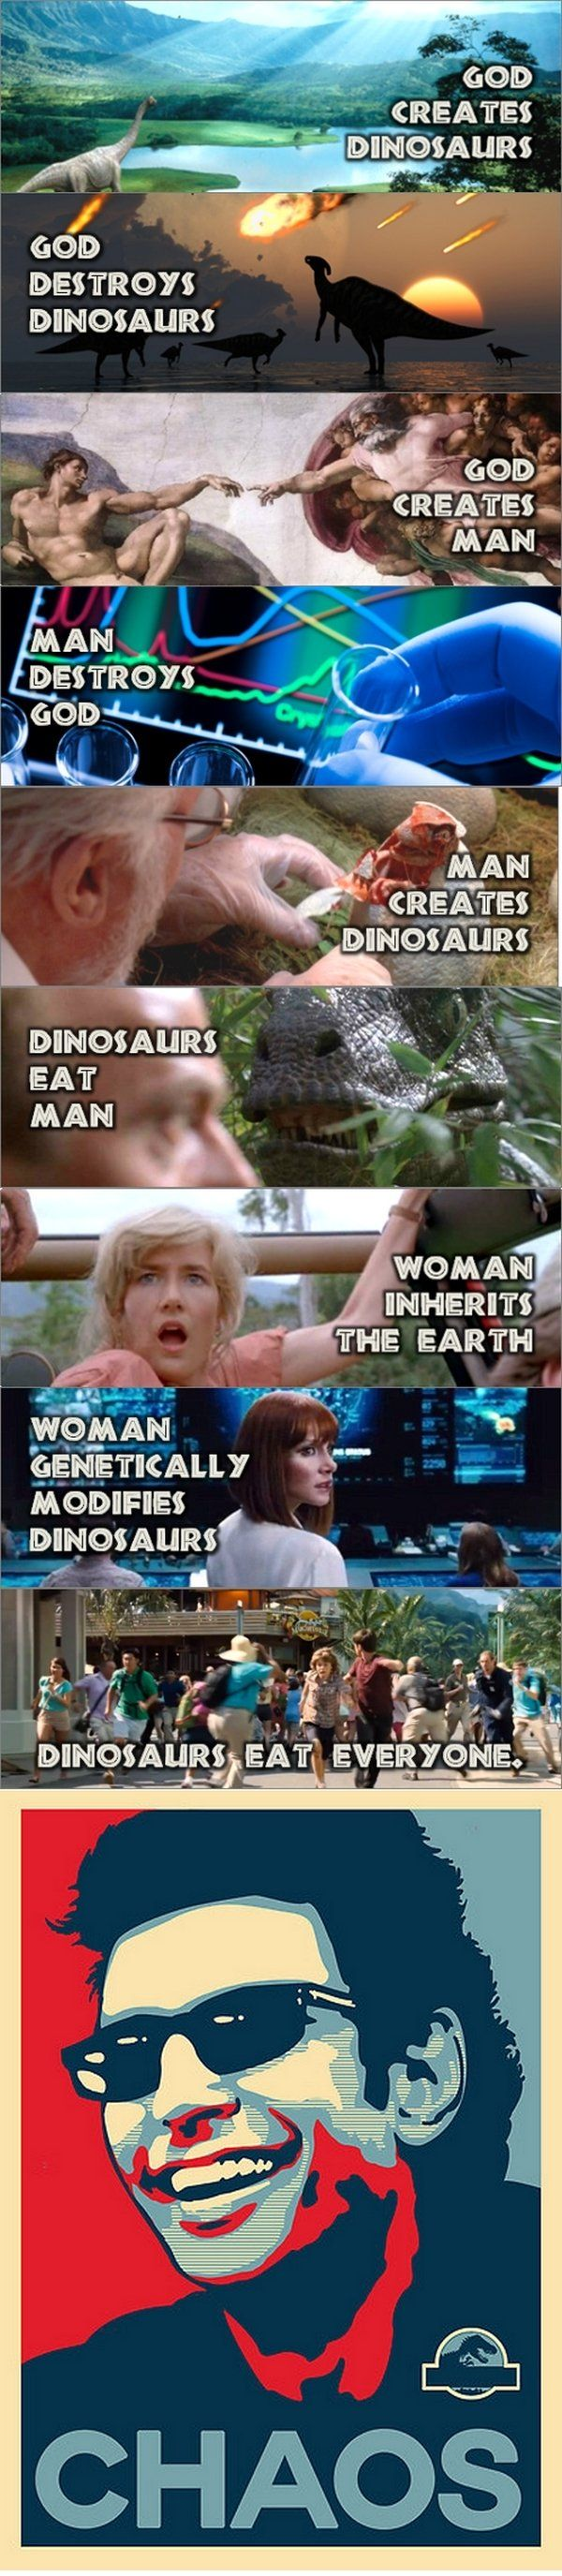 29 best Jurassic World images on Pinterest | Science fiction books ...